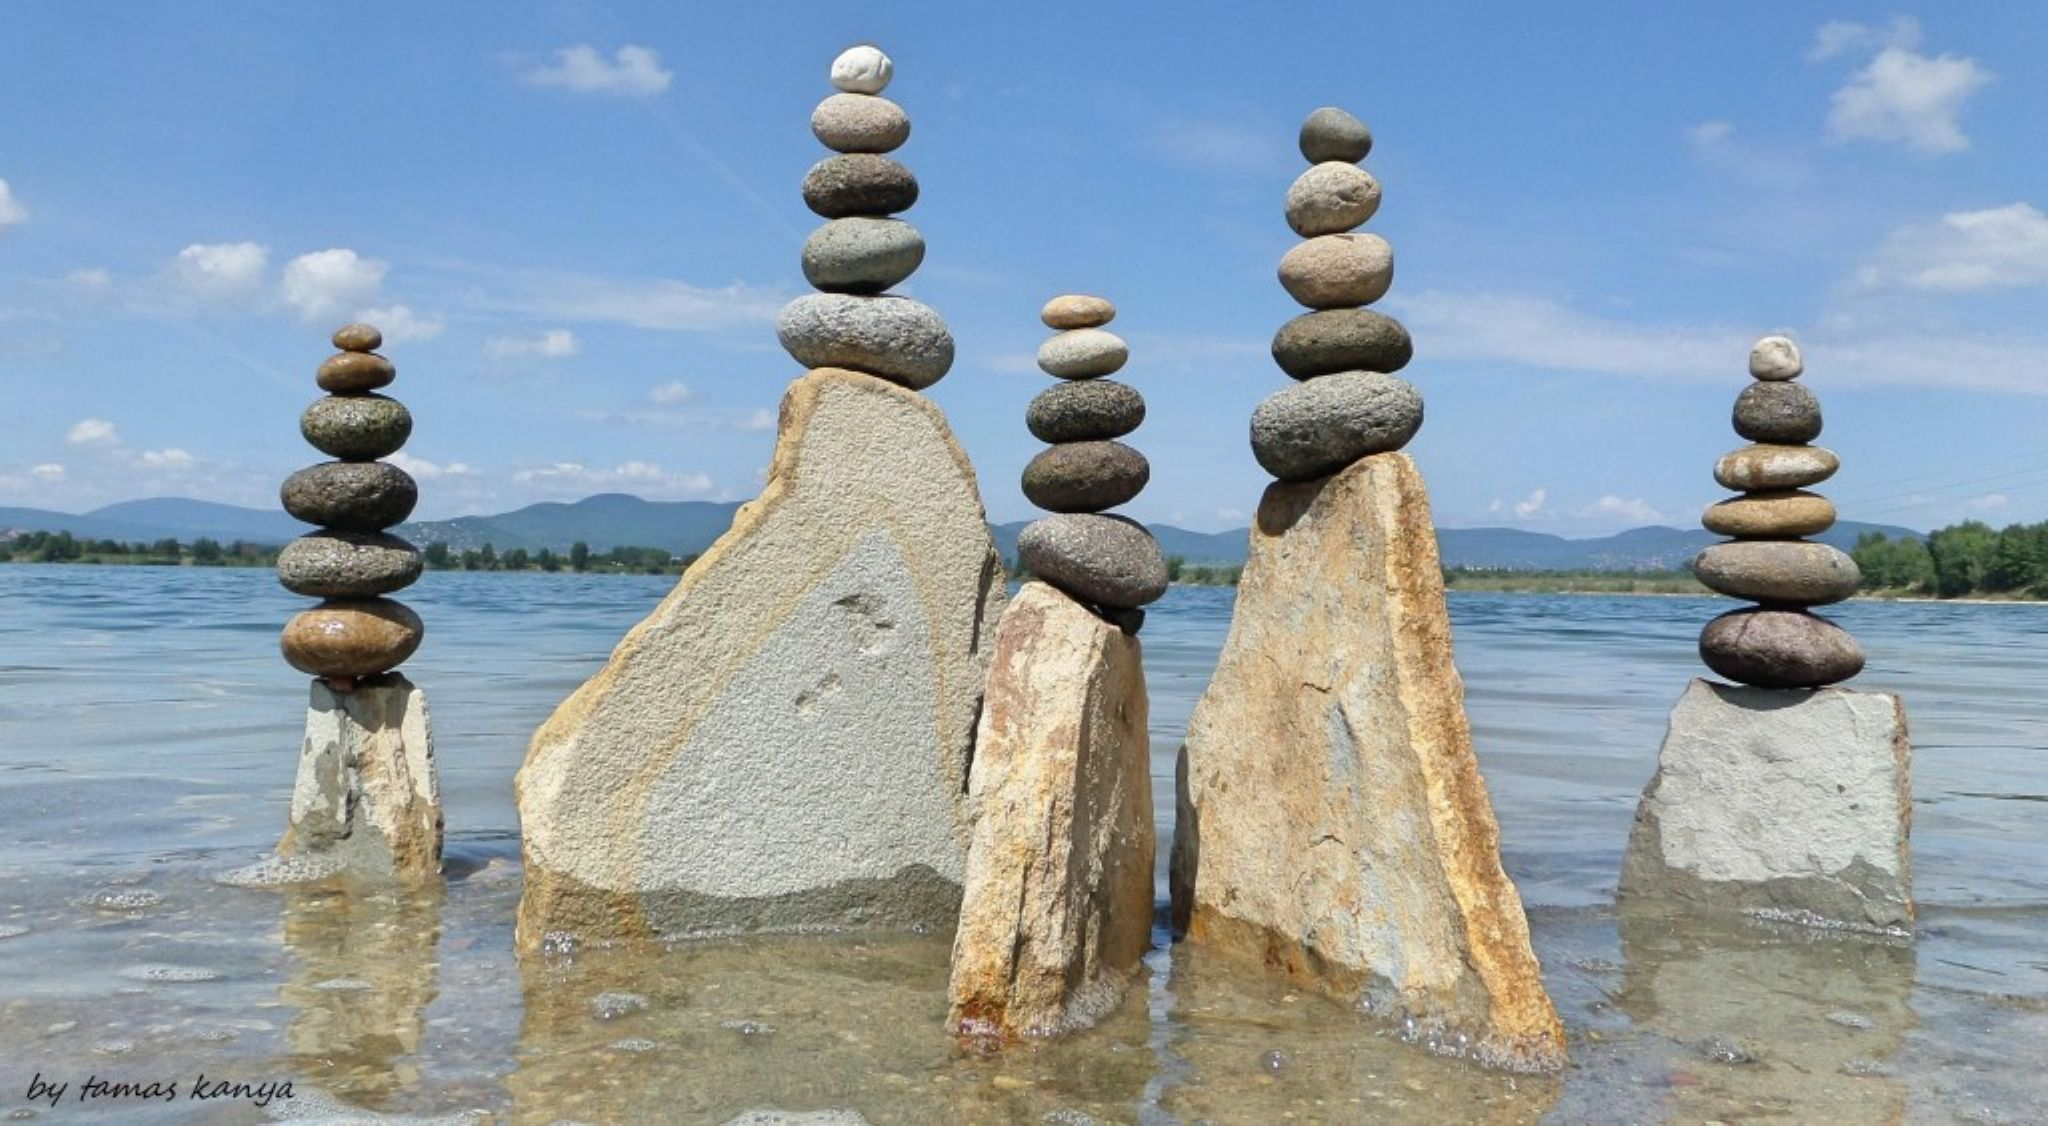 Stone balance composition in Hungary by tamas kanya by Tamas Kanya